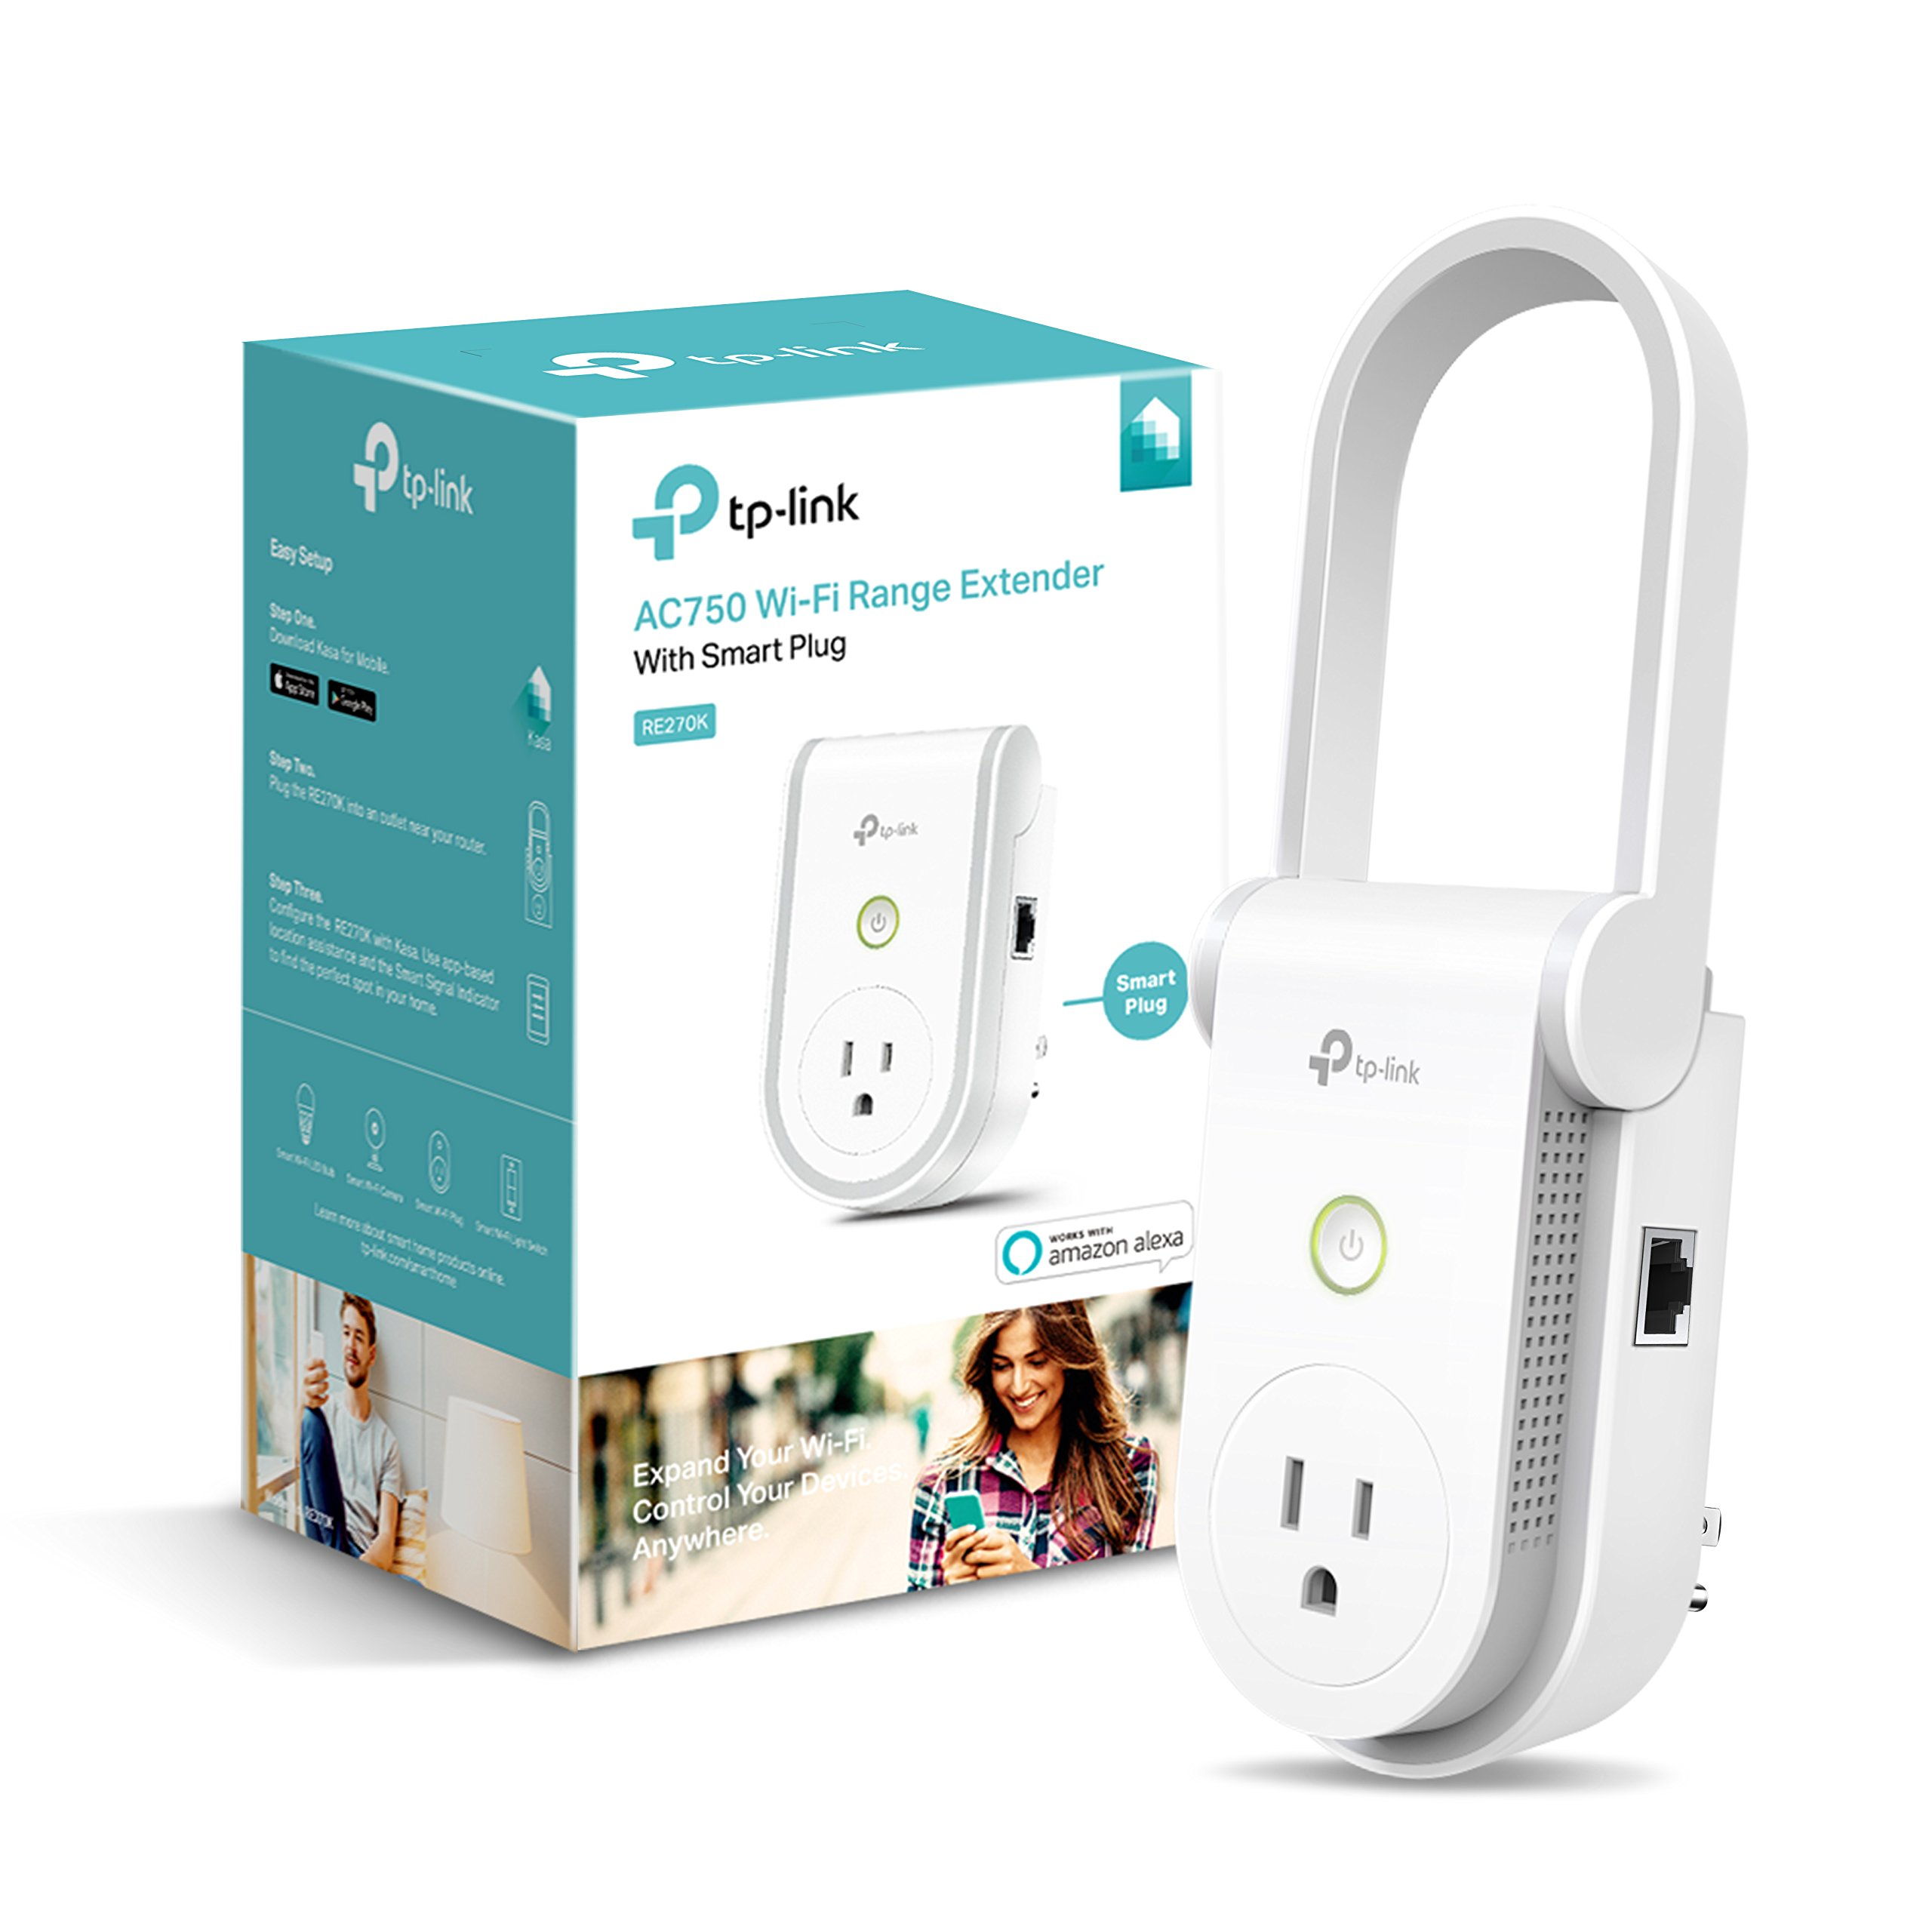 Kasa AC750 Wi-Fi Range Extender Smart Plug by TP-Link - Fast AC750 Wi-Fi Extender/Repeater with Built-in Smart Plug, No Hub Required, Works with Alexa and Google Assistant (RE270K)